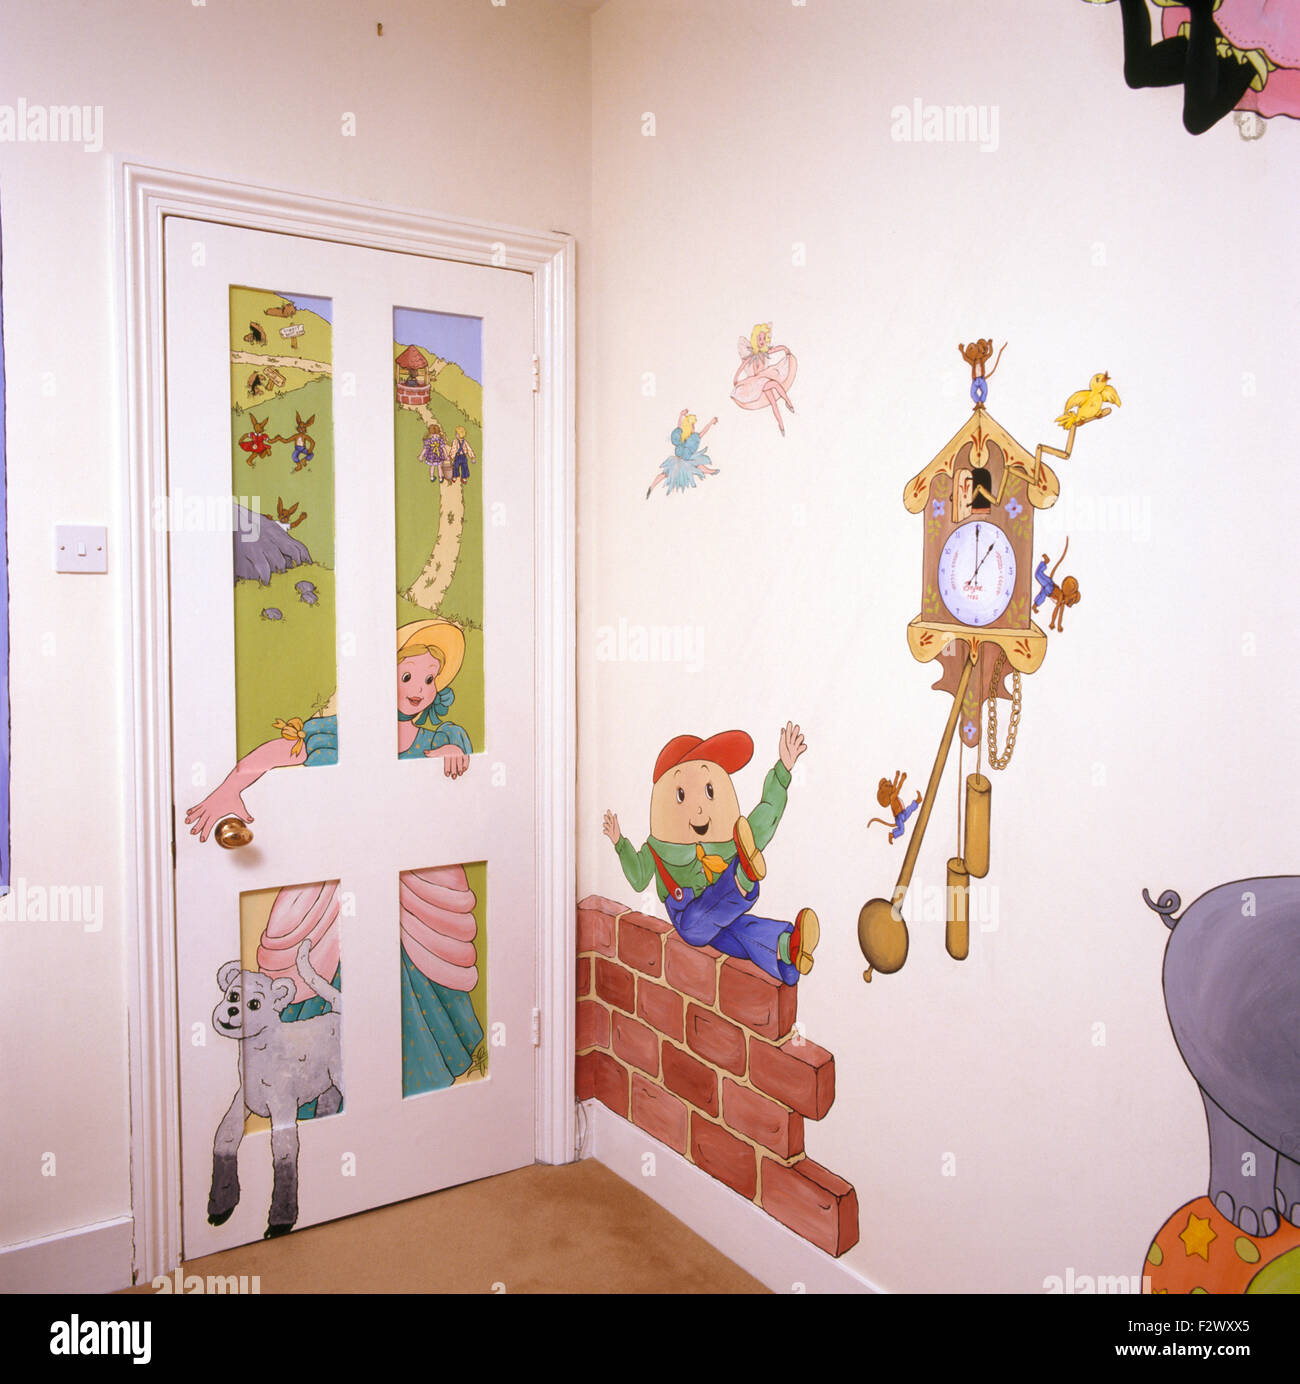 Nursery rhyme characters painted on door and wall in childu0027s eighties bedroom & Nursery rhyme characters painted on door and wall in childu0027s ...